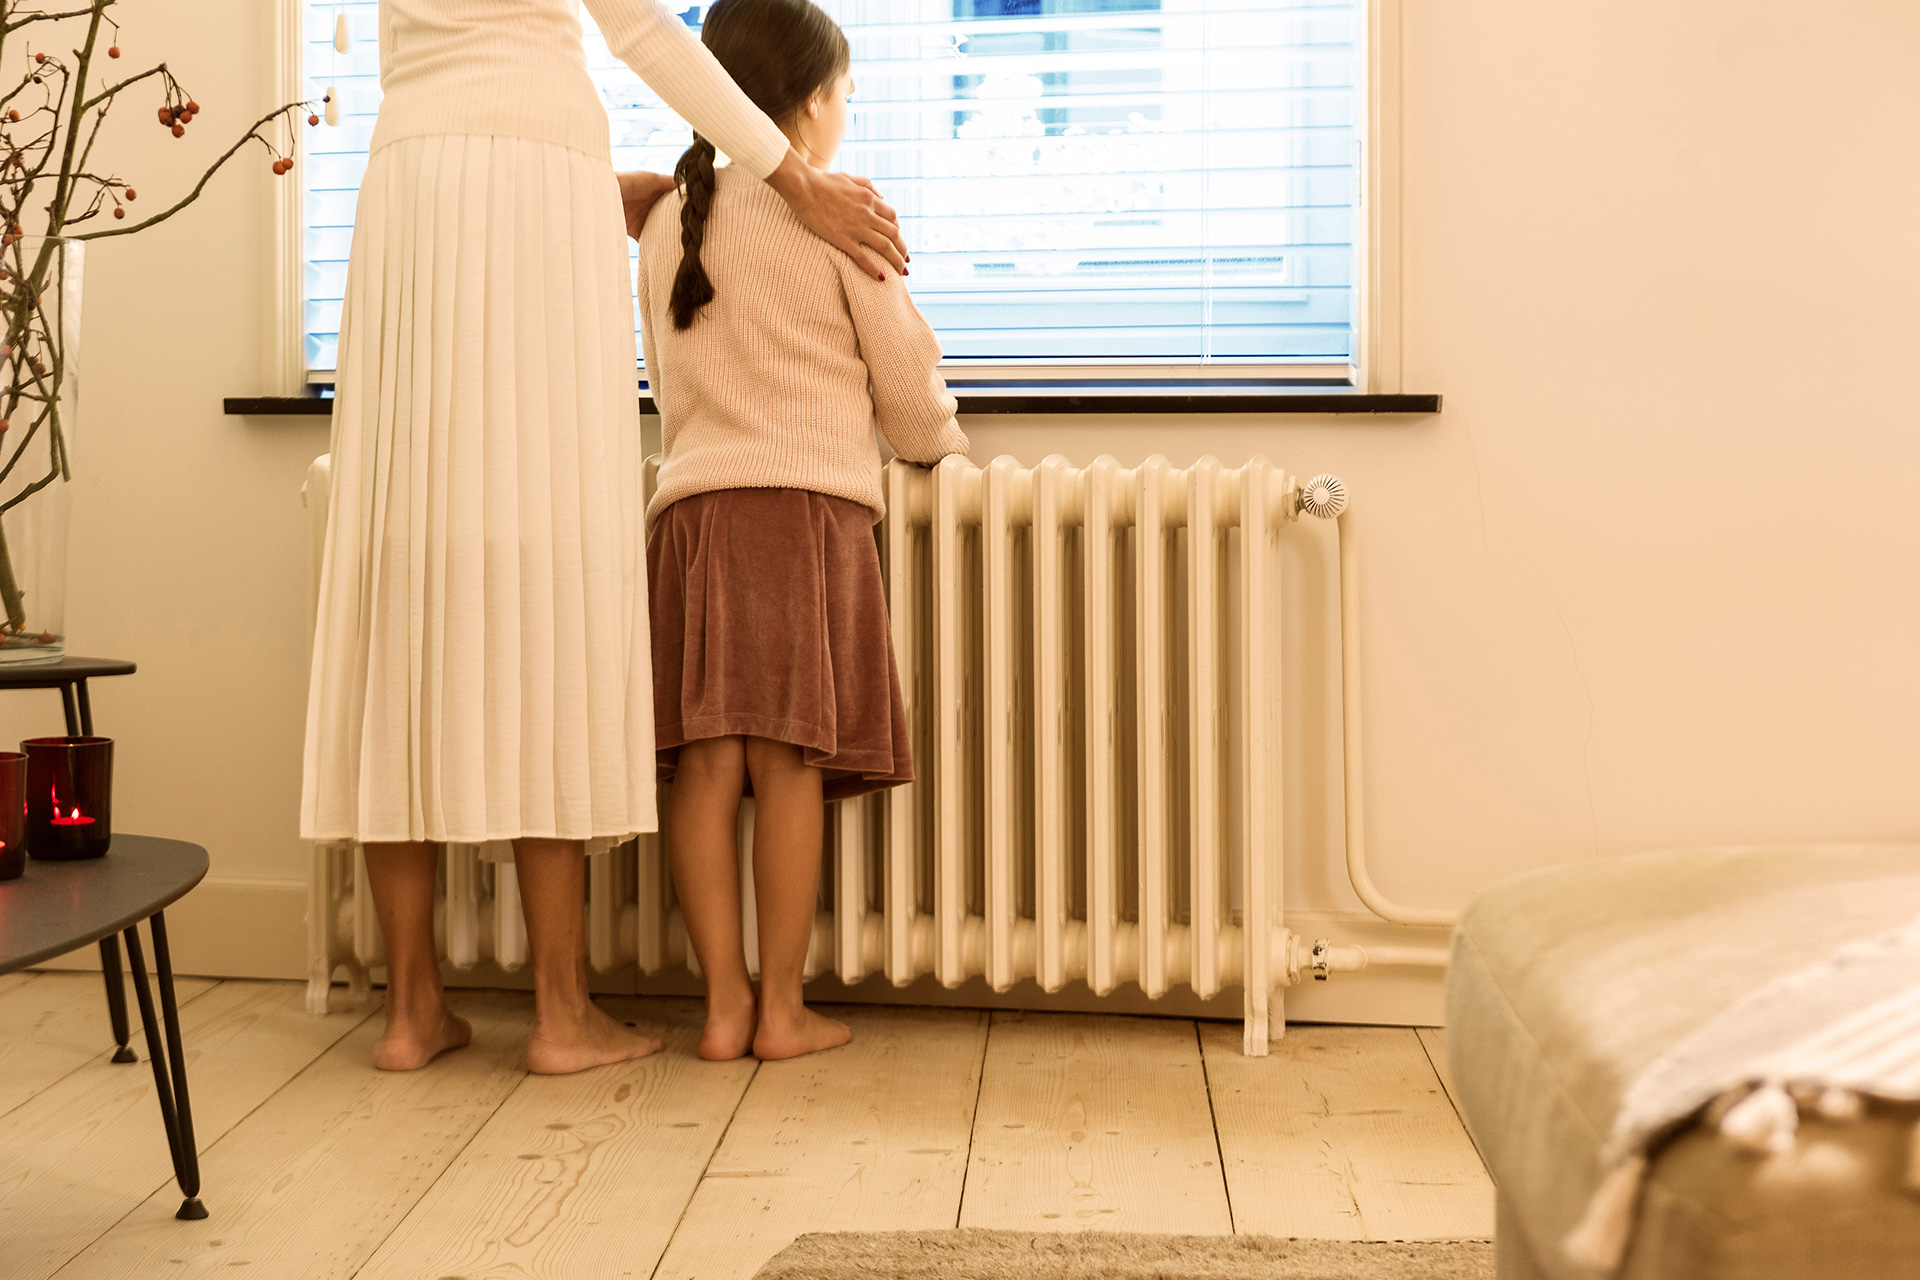 Young girl and mother looking out of window touching old radiator